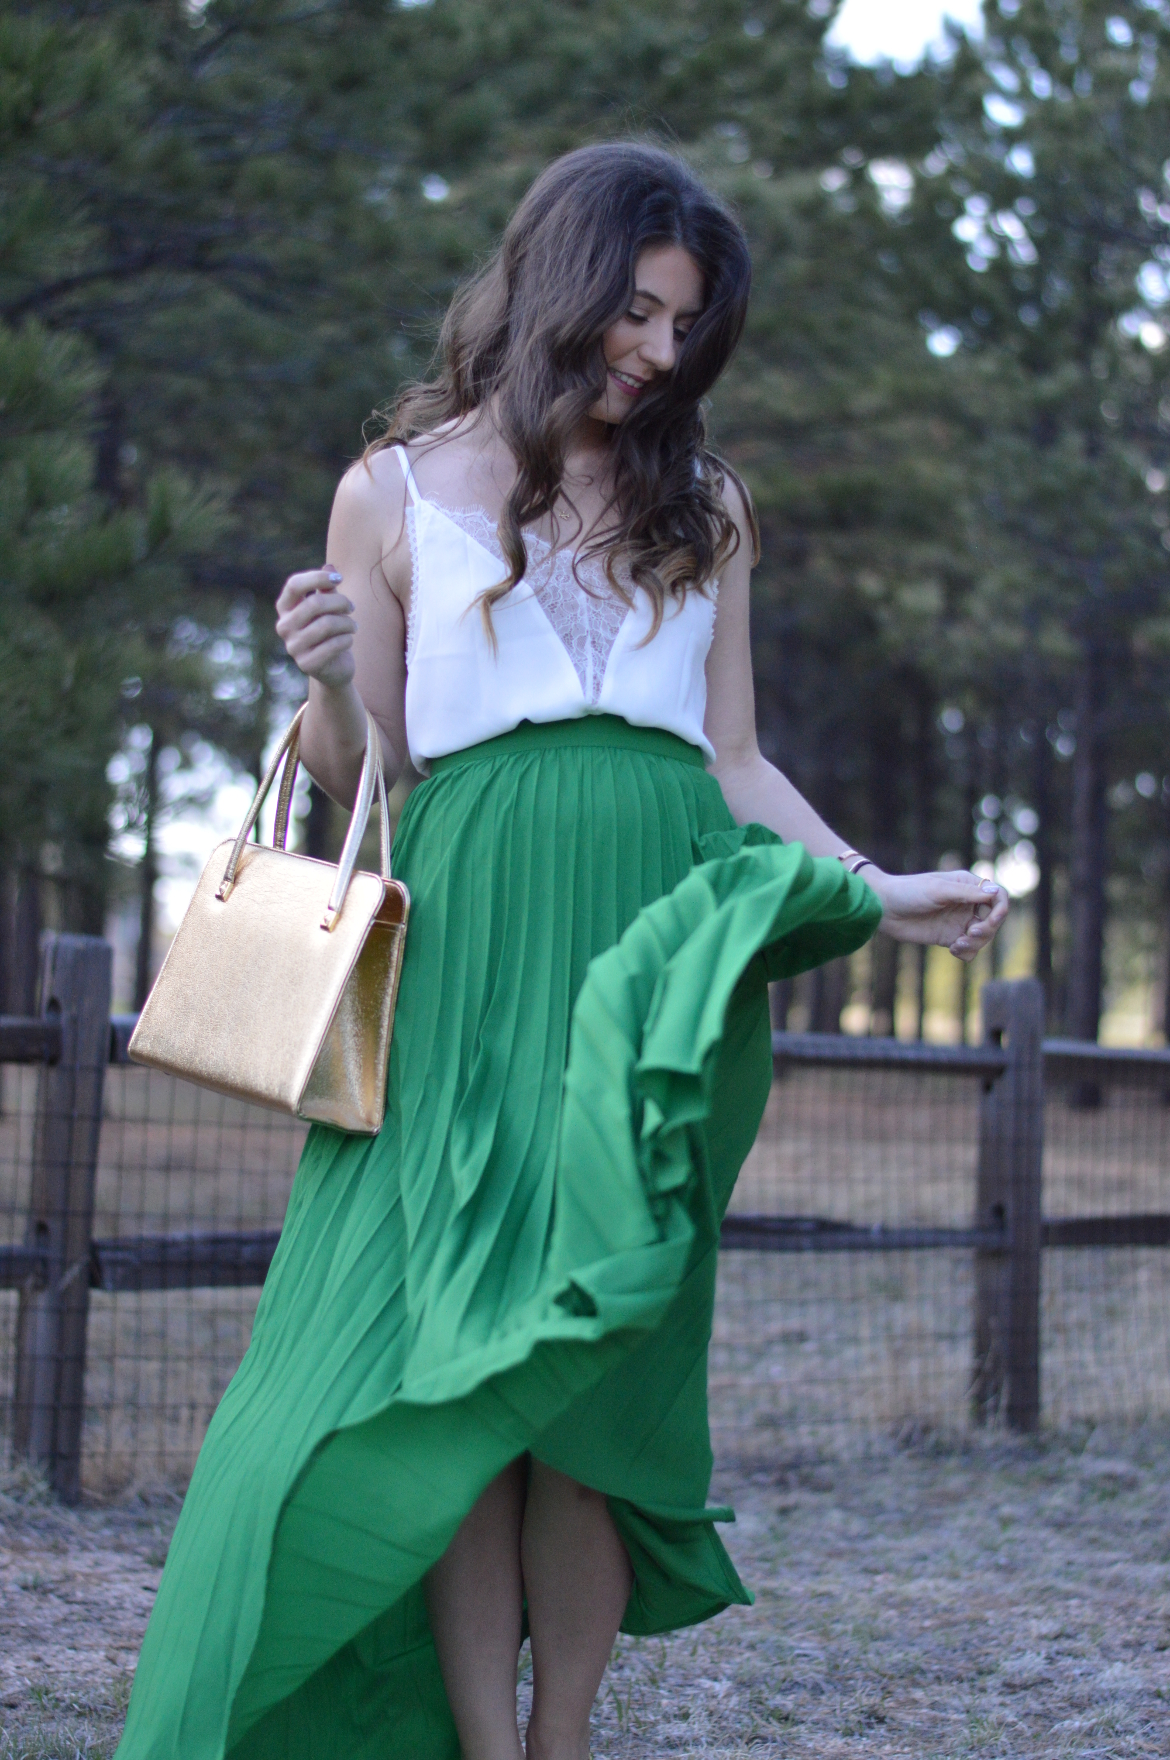 FRIDAY FAVORITES: THE FINAL EDITION green shein skirt pleated maxi skirt flowy kelly green white shein plunge lace top lace camisole golden gold vintage bag structured purse yellow snakeskin vintage kate spade mini wedge colorado springs blogger denver blogger ashleigh jean lopes